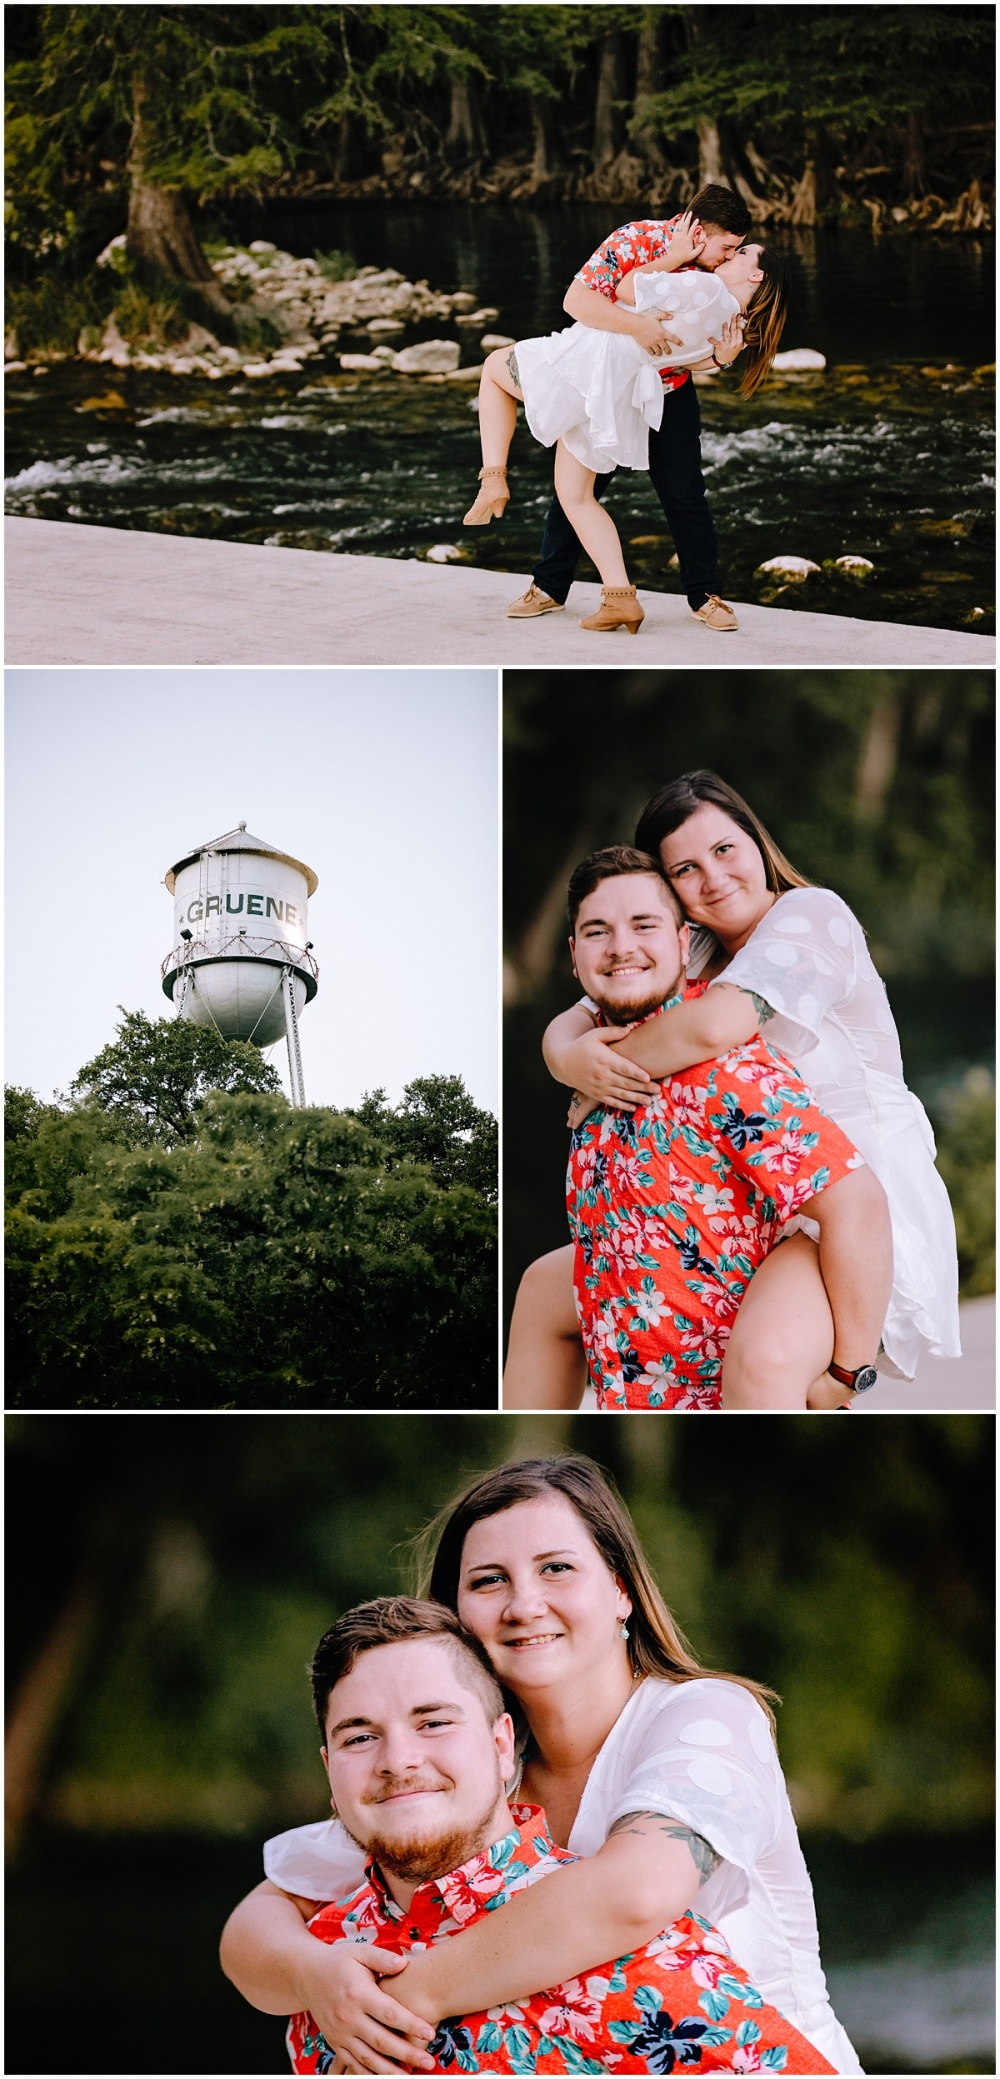 Engagement-Portraits-Couples-New-Braunels-Downtown-Carly-Barton-Photography-Wedding-Photographer-Gruene-Texas_0012.jpg